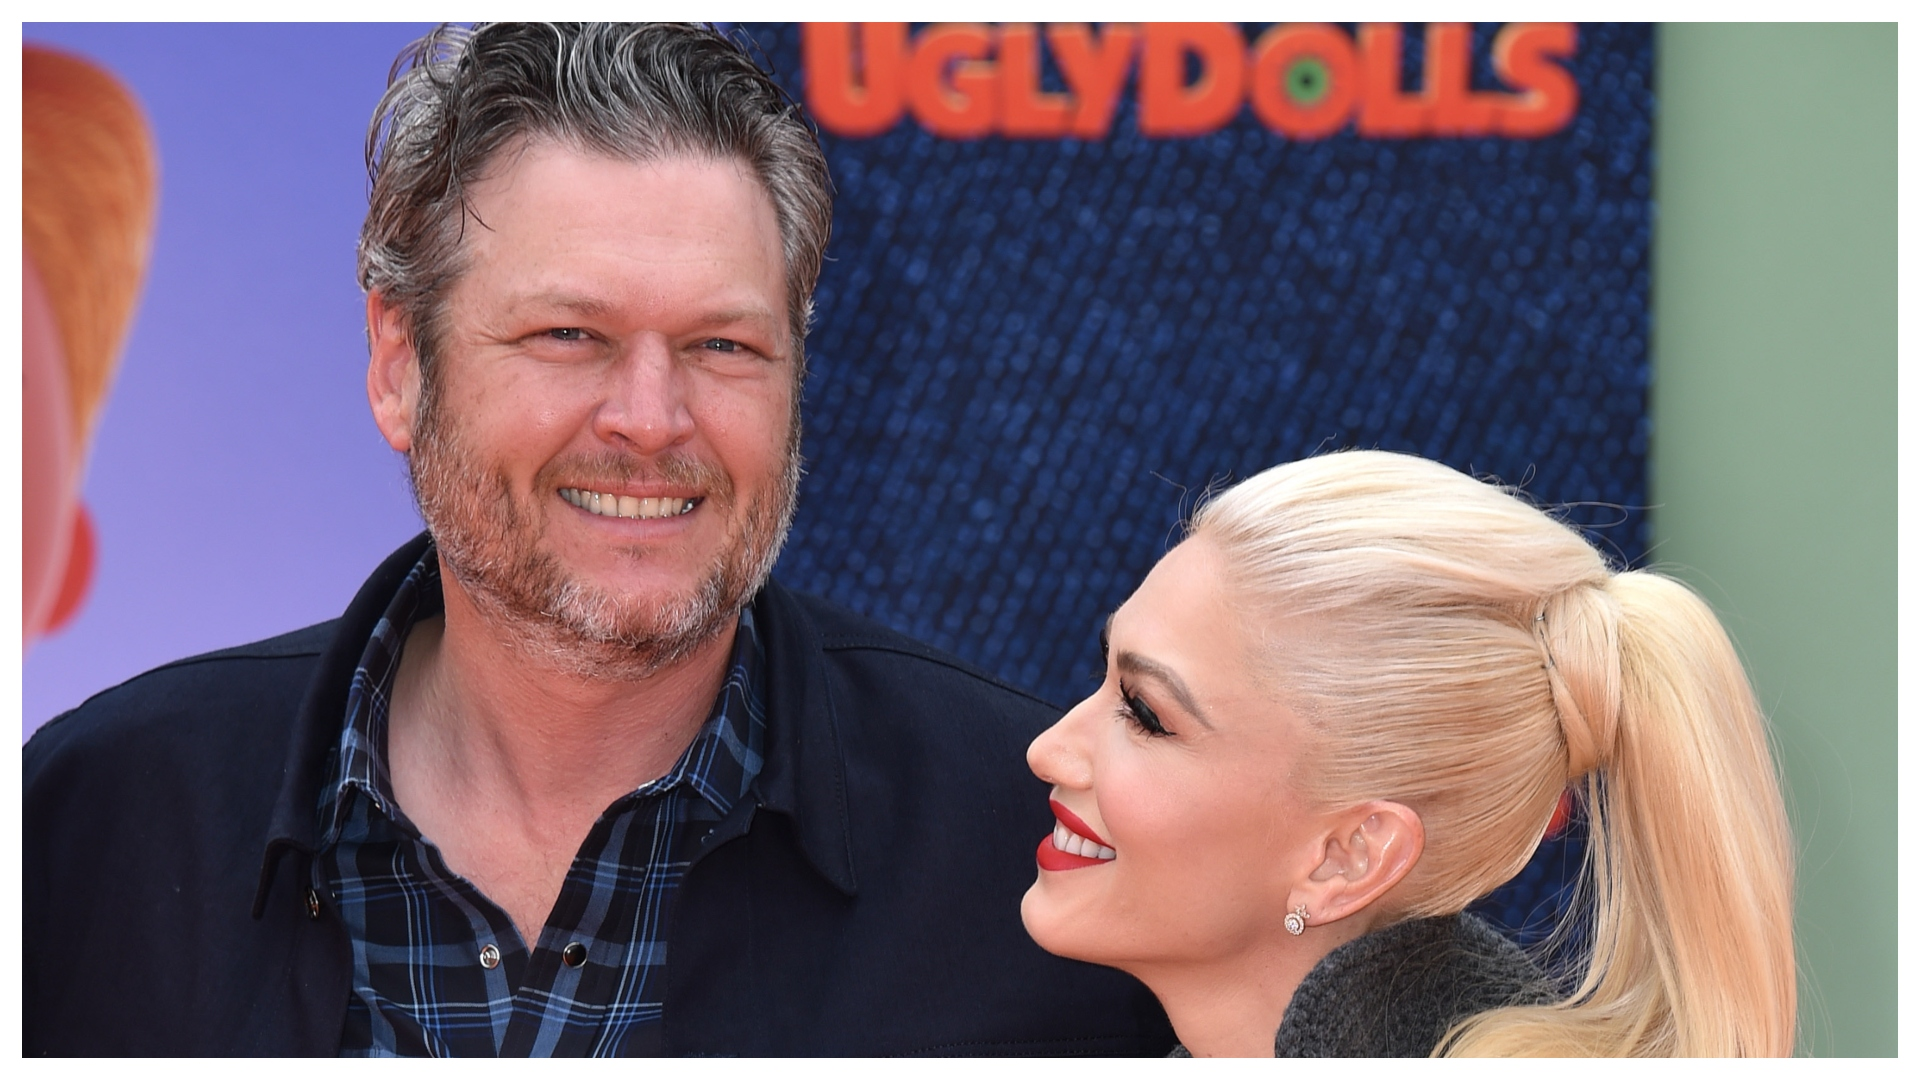 Blake Shelton Gwen Stefani S Duet Hints At Engagement Sheknows I don't wanna go down any other road now i don't wanna love nobody but you looking in your eyes now, if i had to die now i don't wanna love nobody but you. blake shelton gwen stefani s duet